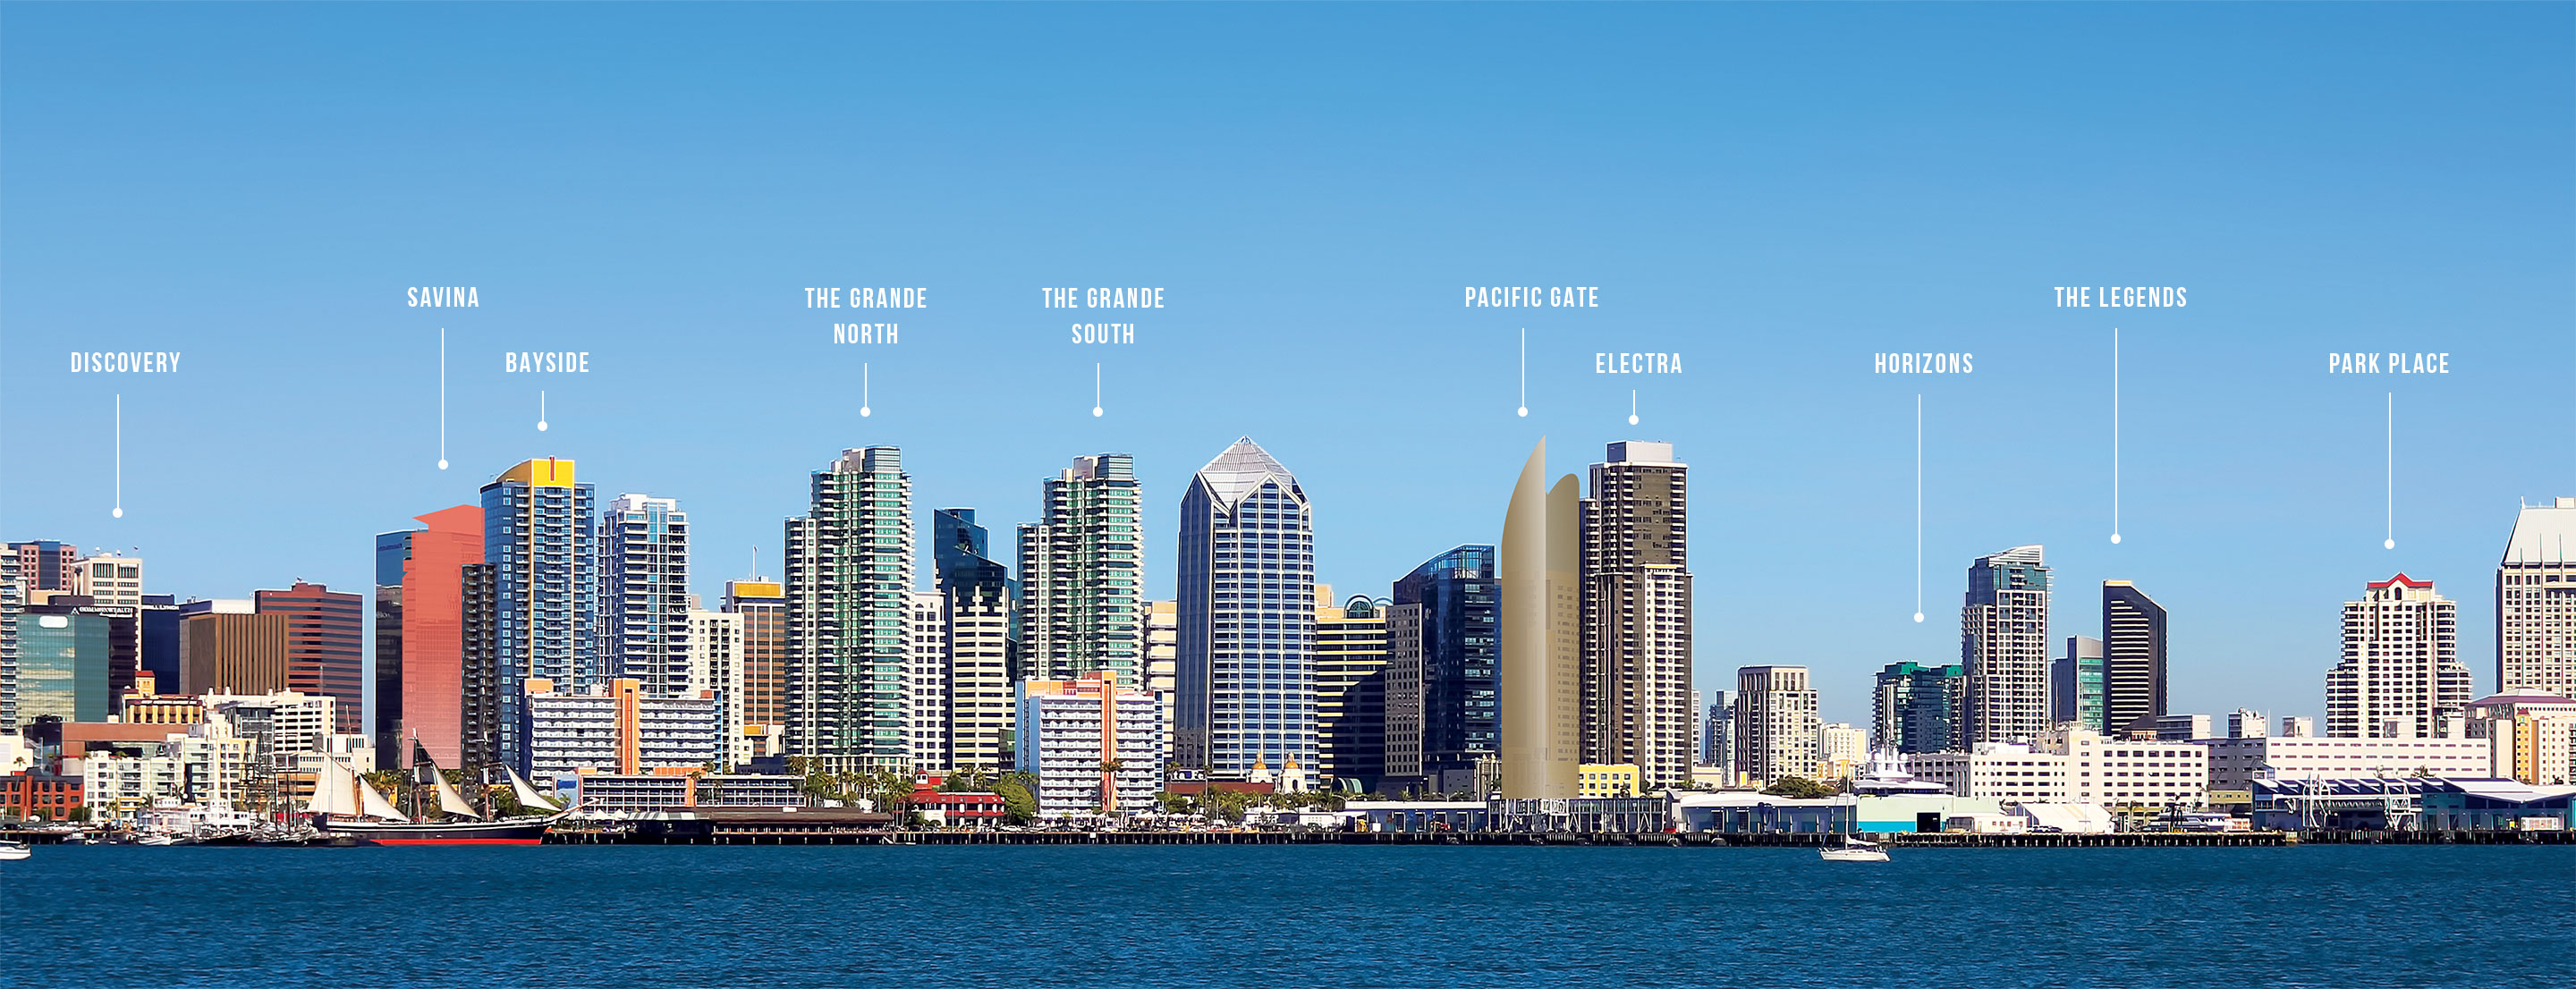 San diego skyline with multiple bosa properties